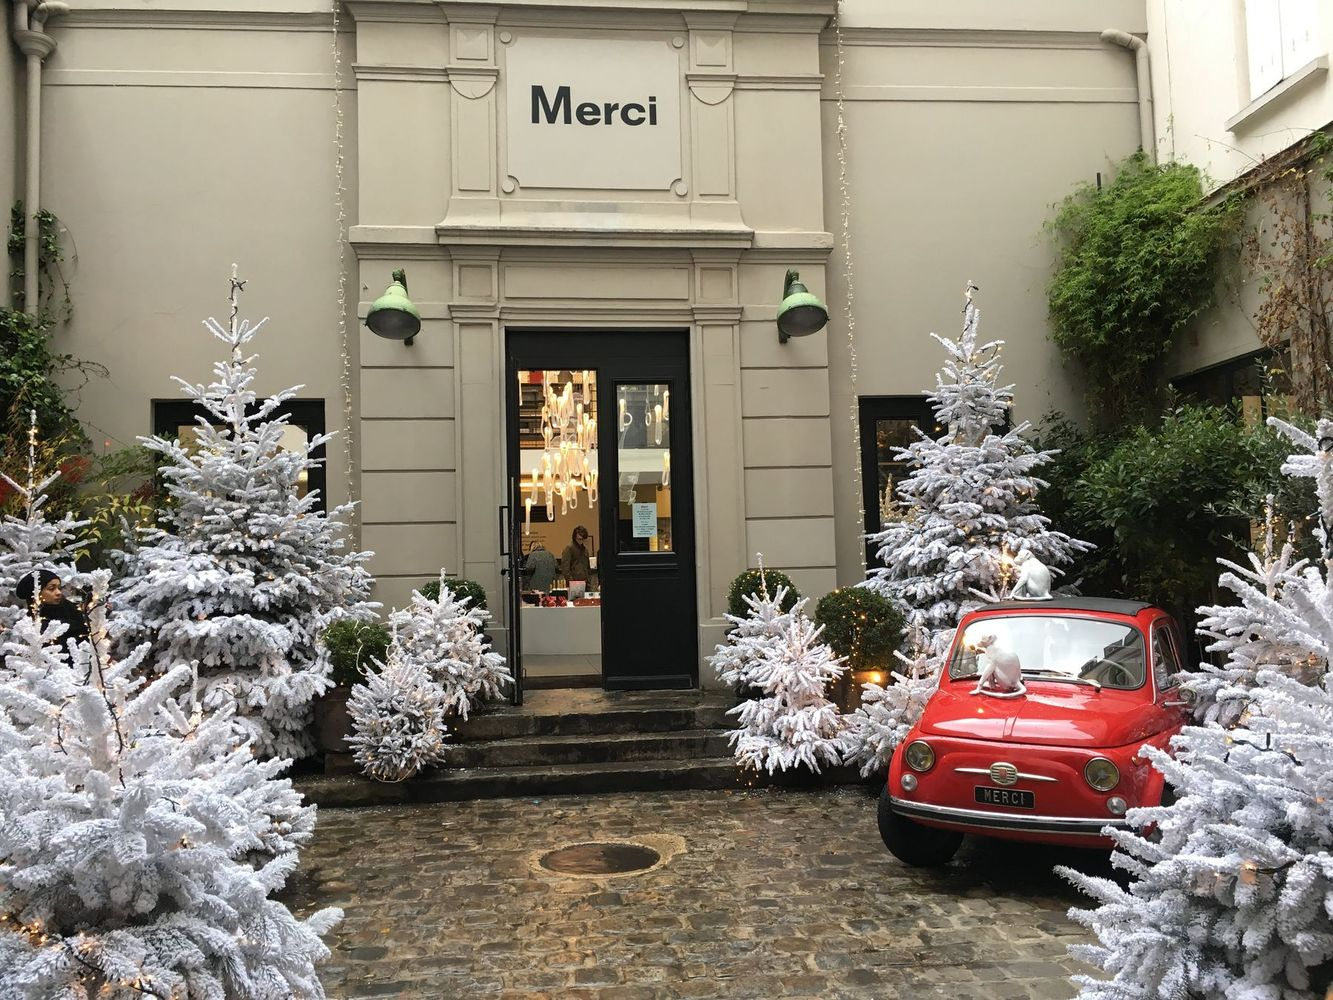 Where To Shop During Winter In Paris - Merci